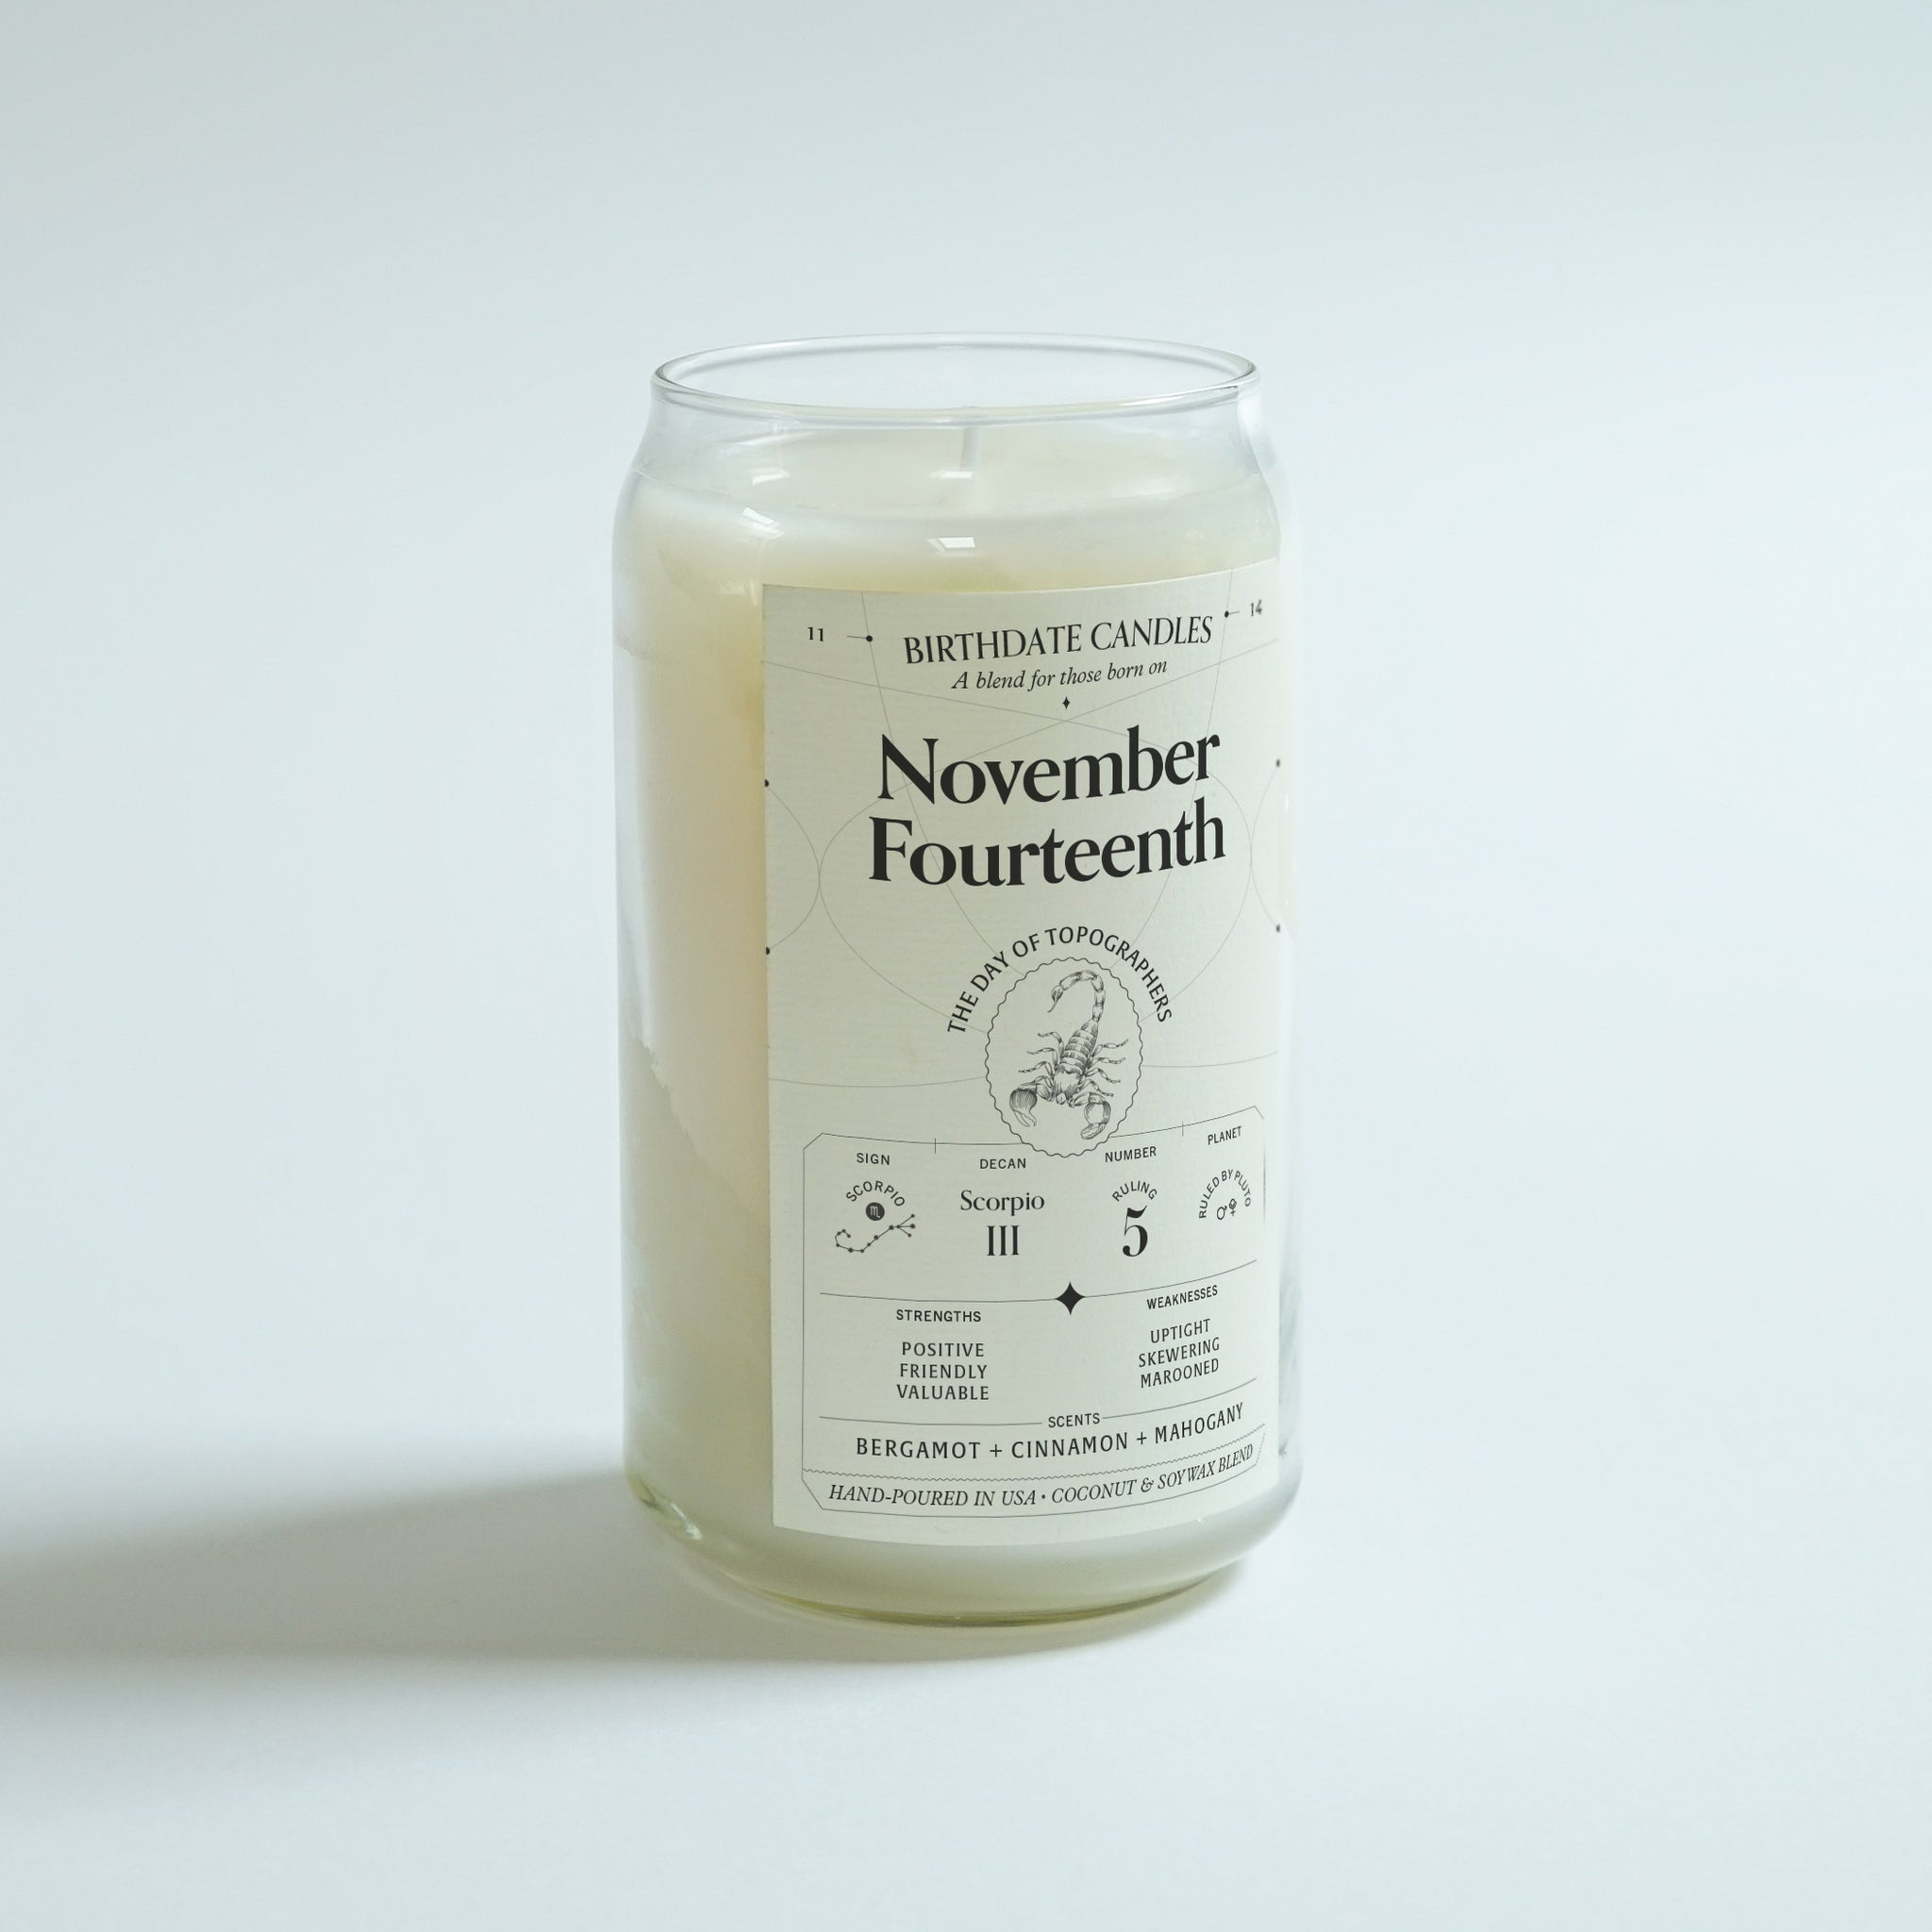 The November Fourteenth Candle